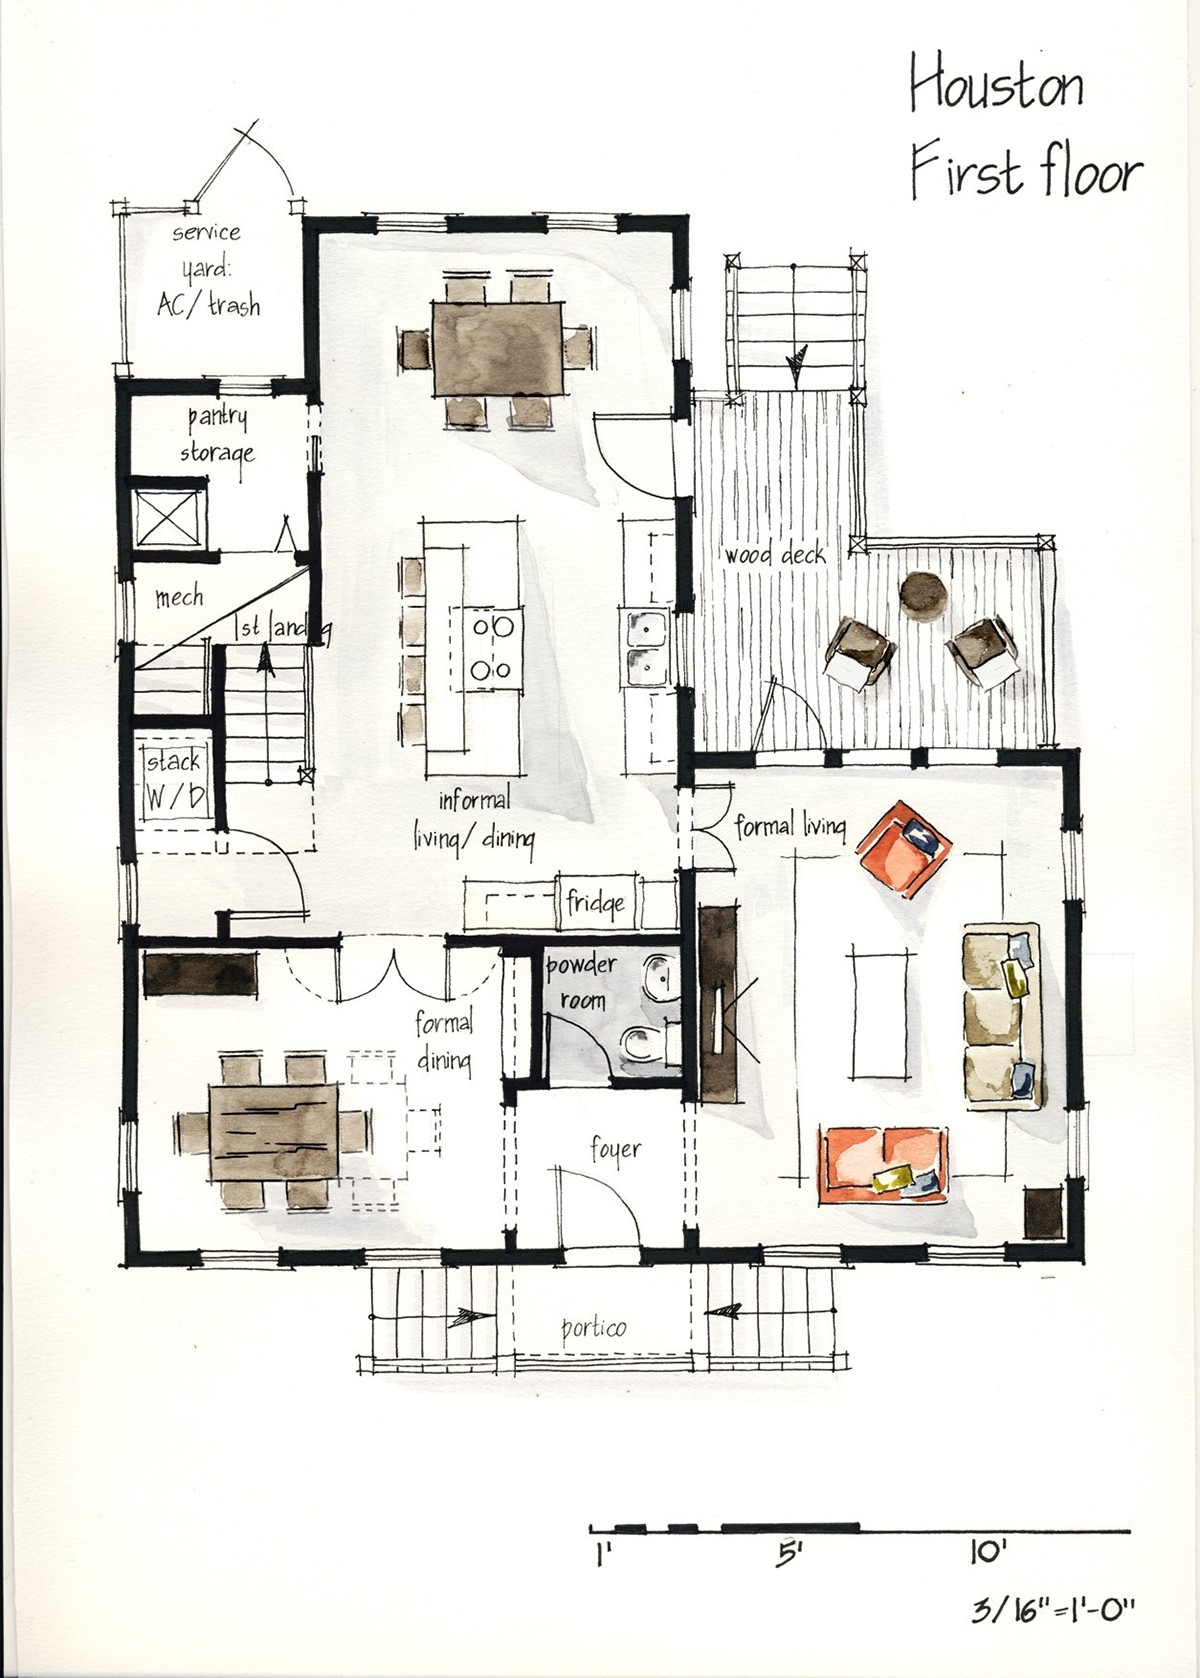 Real estate watercolor 2d floor plans part 1 on behance for Floor plans real estate